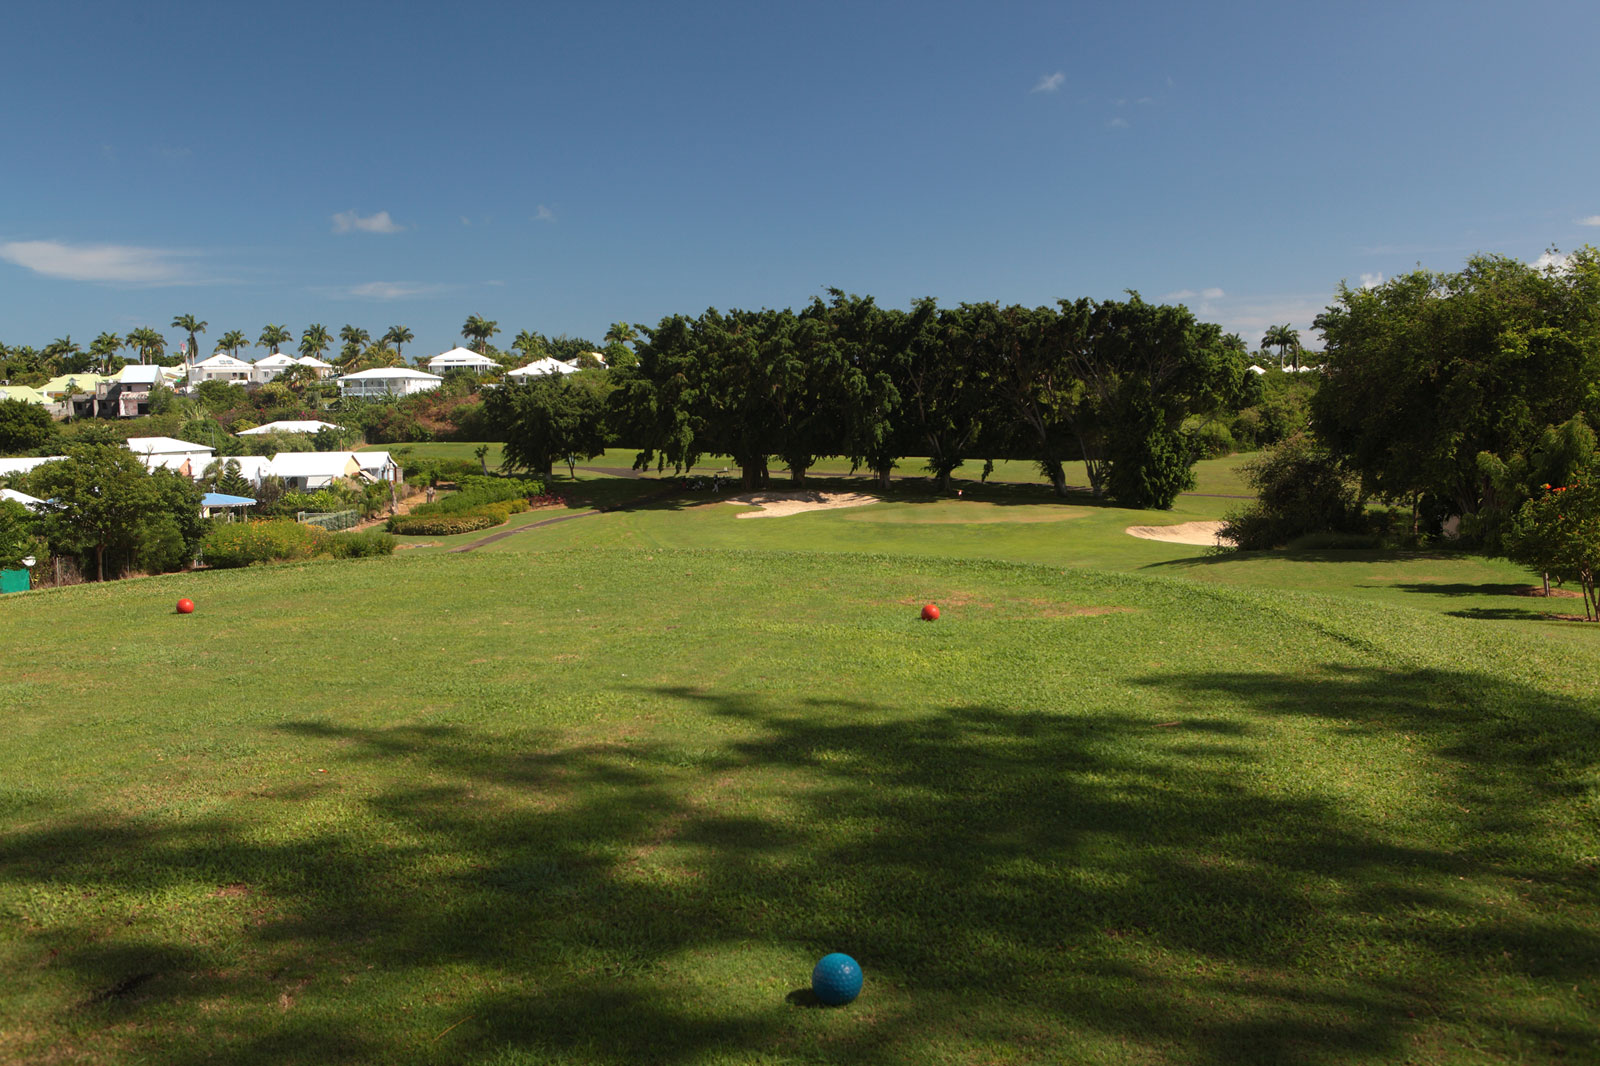 http://www.deshotelsetdesiles.com/hotel-vol-guadeloupe/hotels/d2-golf.56-small.jpg